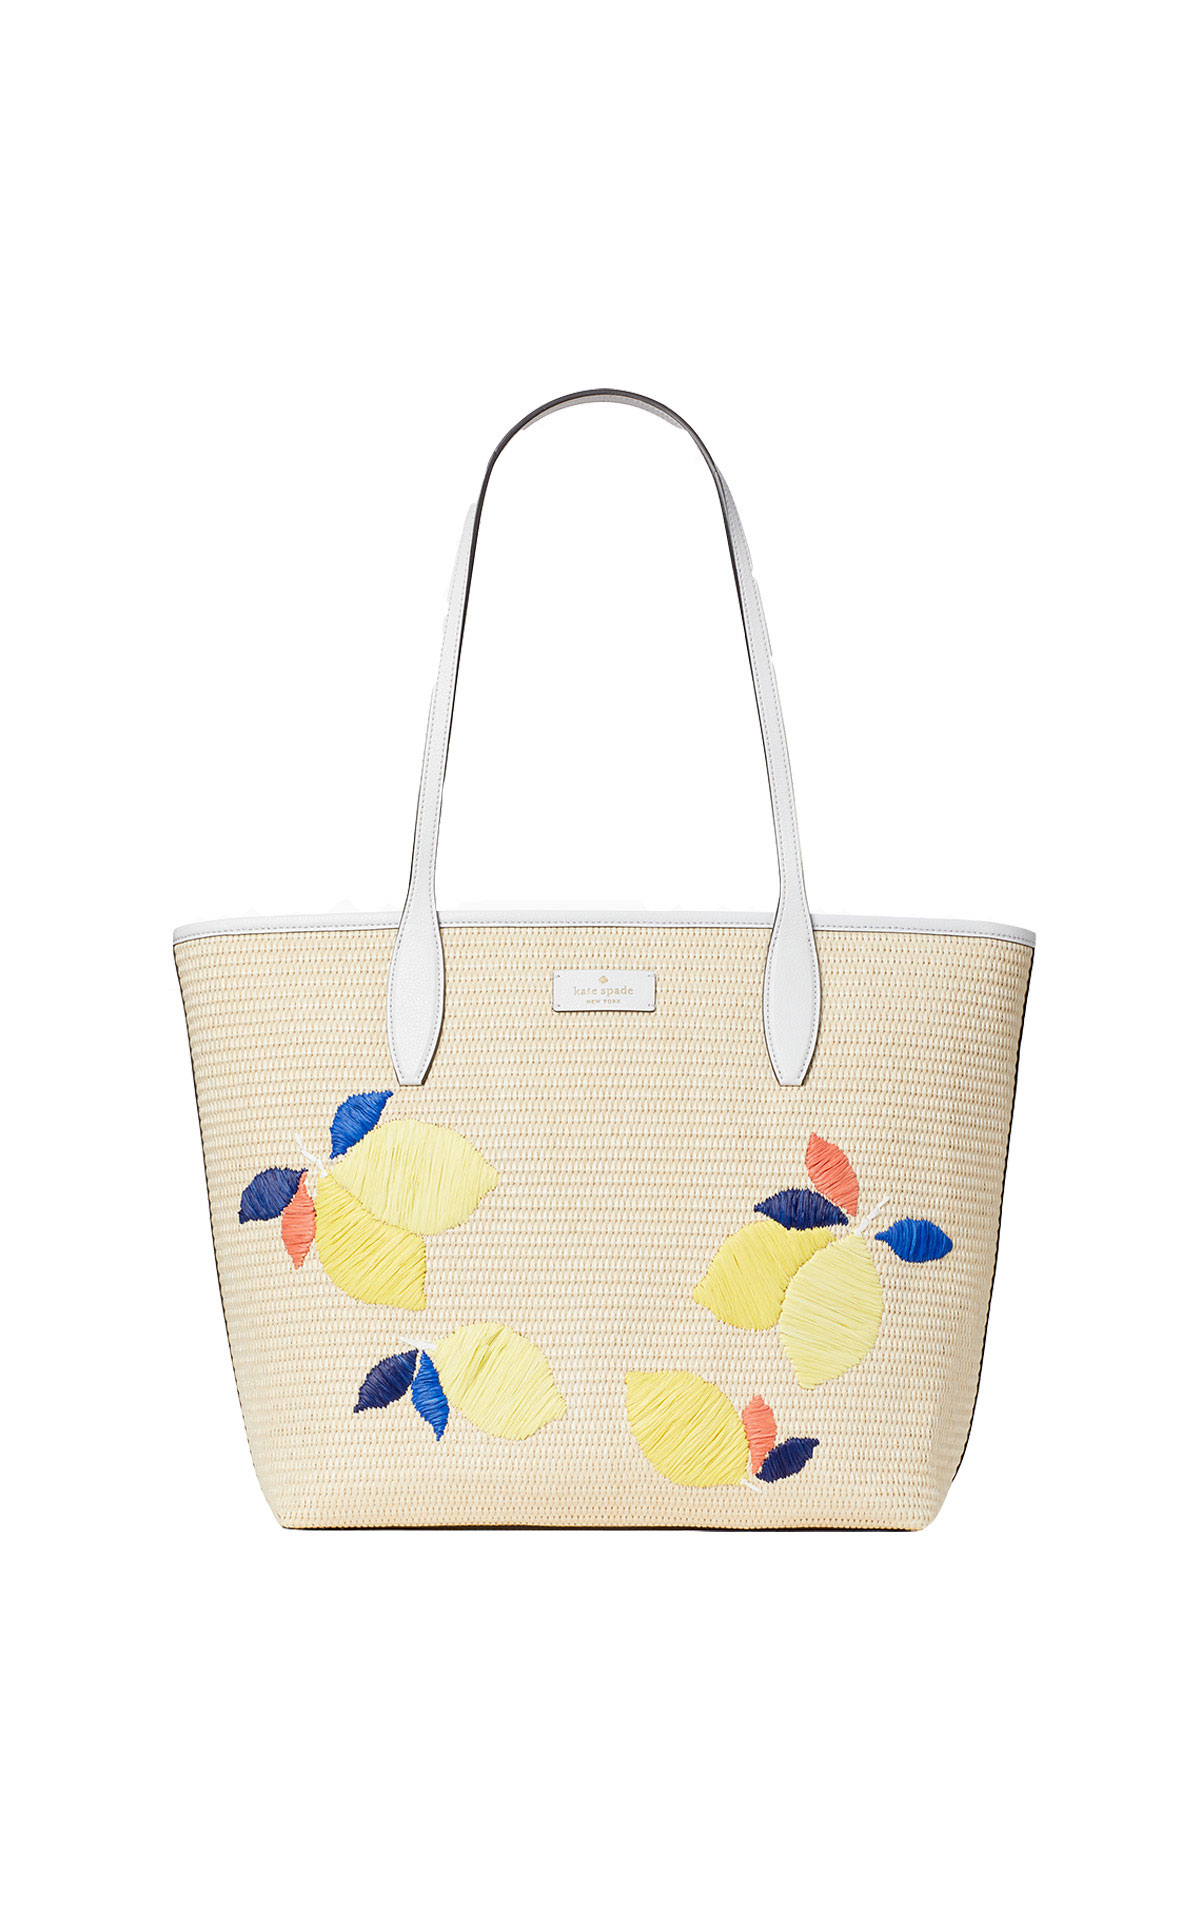 kate spade new york Ash straw lemon zest large triple compartment tote from Bicester Village